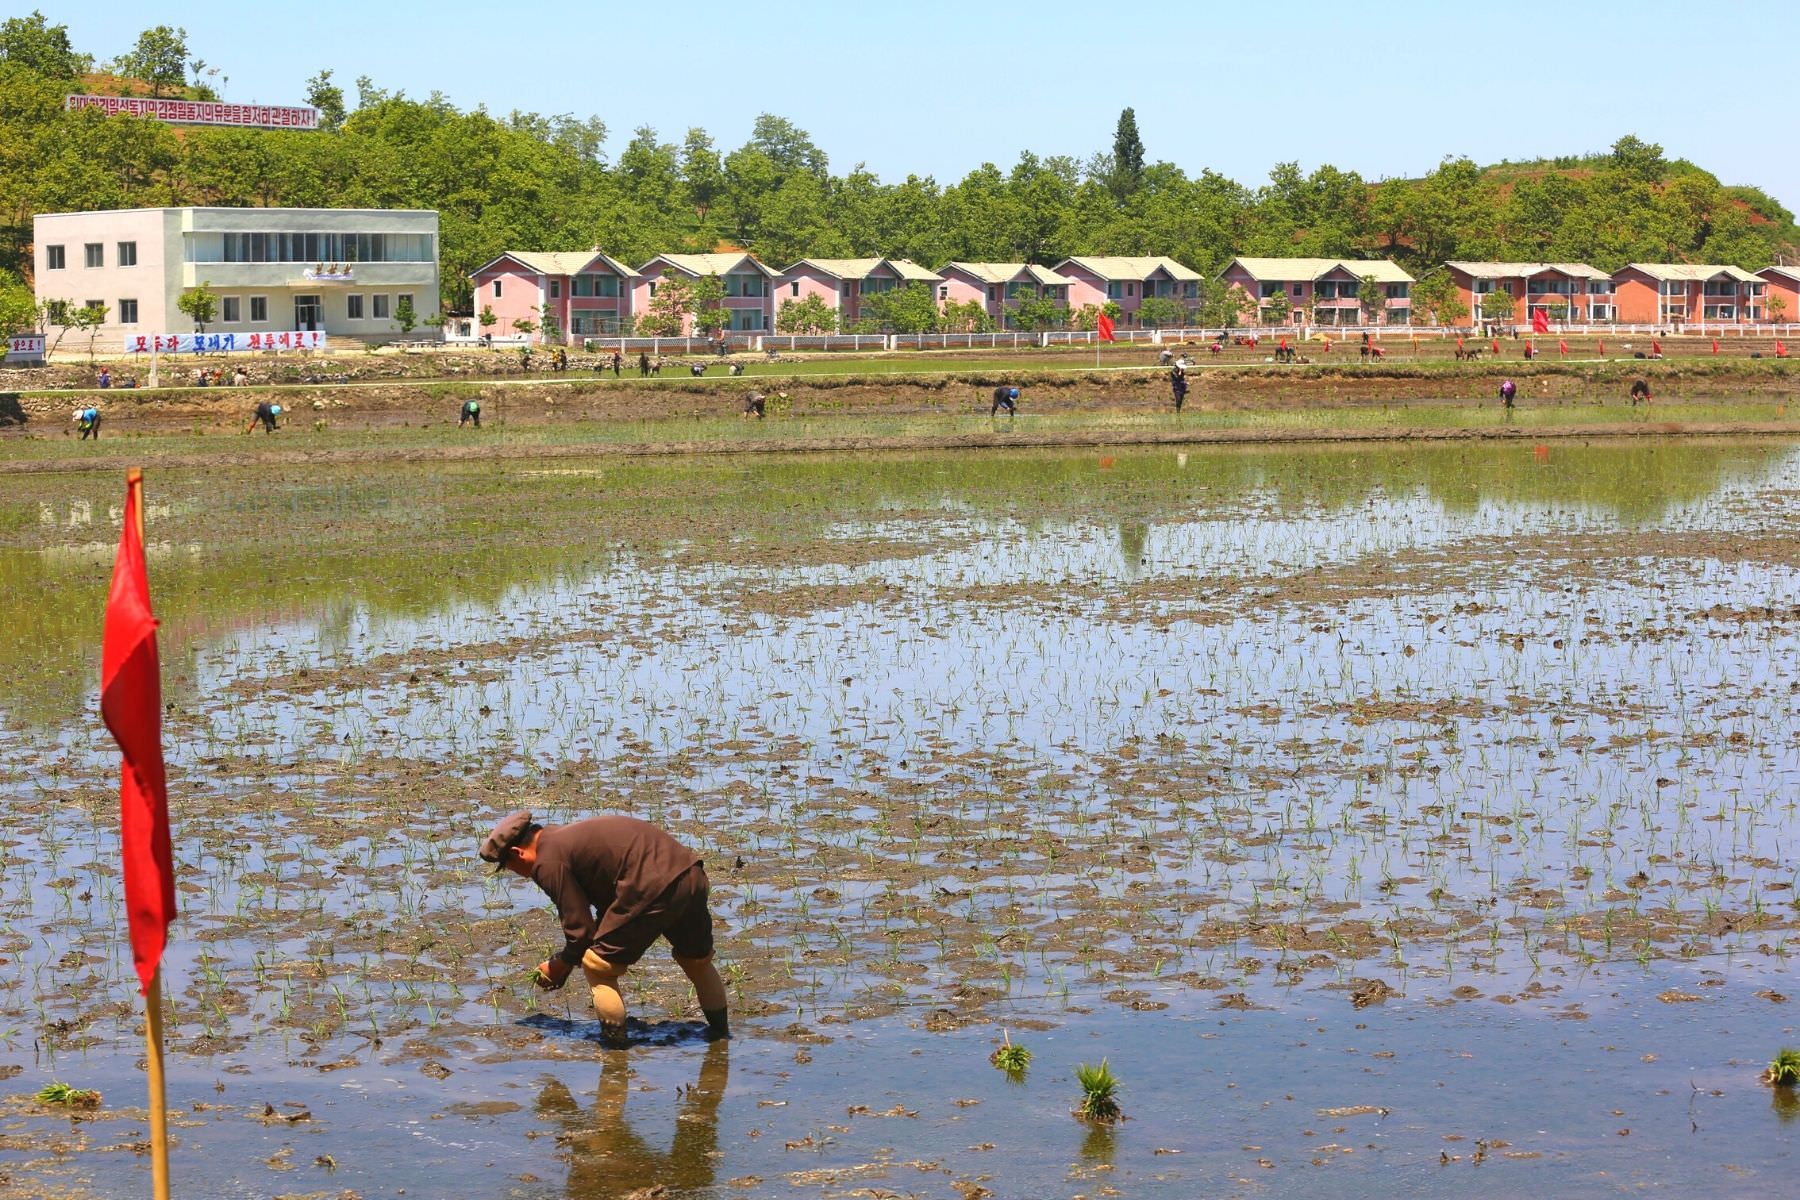 Chonsam Cooperative farm in Wonsan city, North Korea (DPRK). Trip arranged by KTG Tours